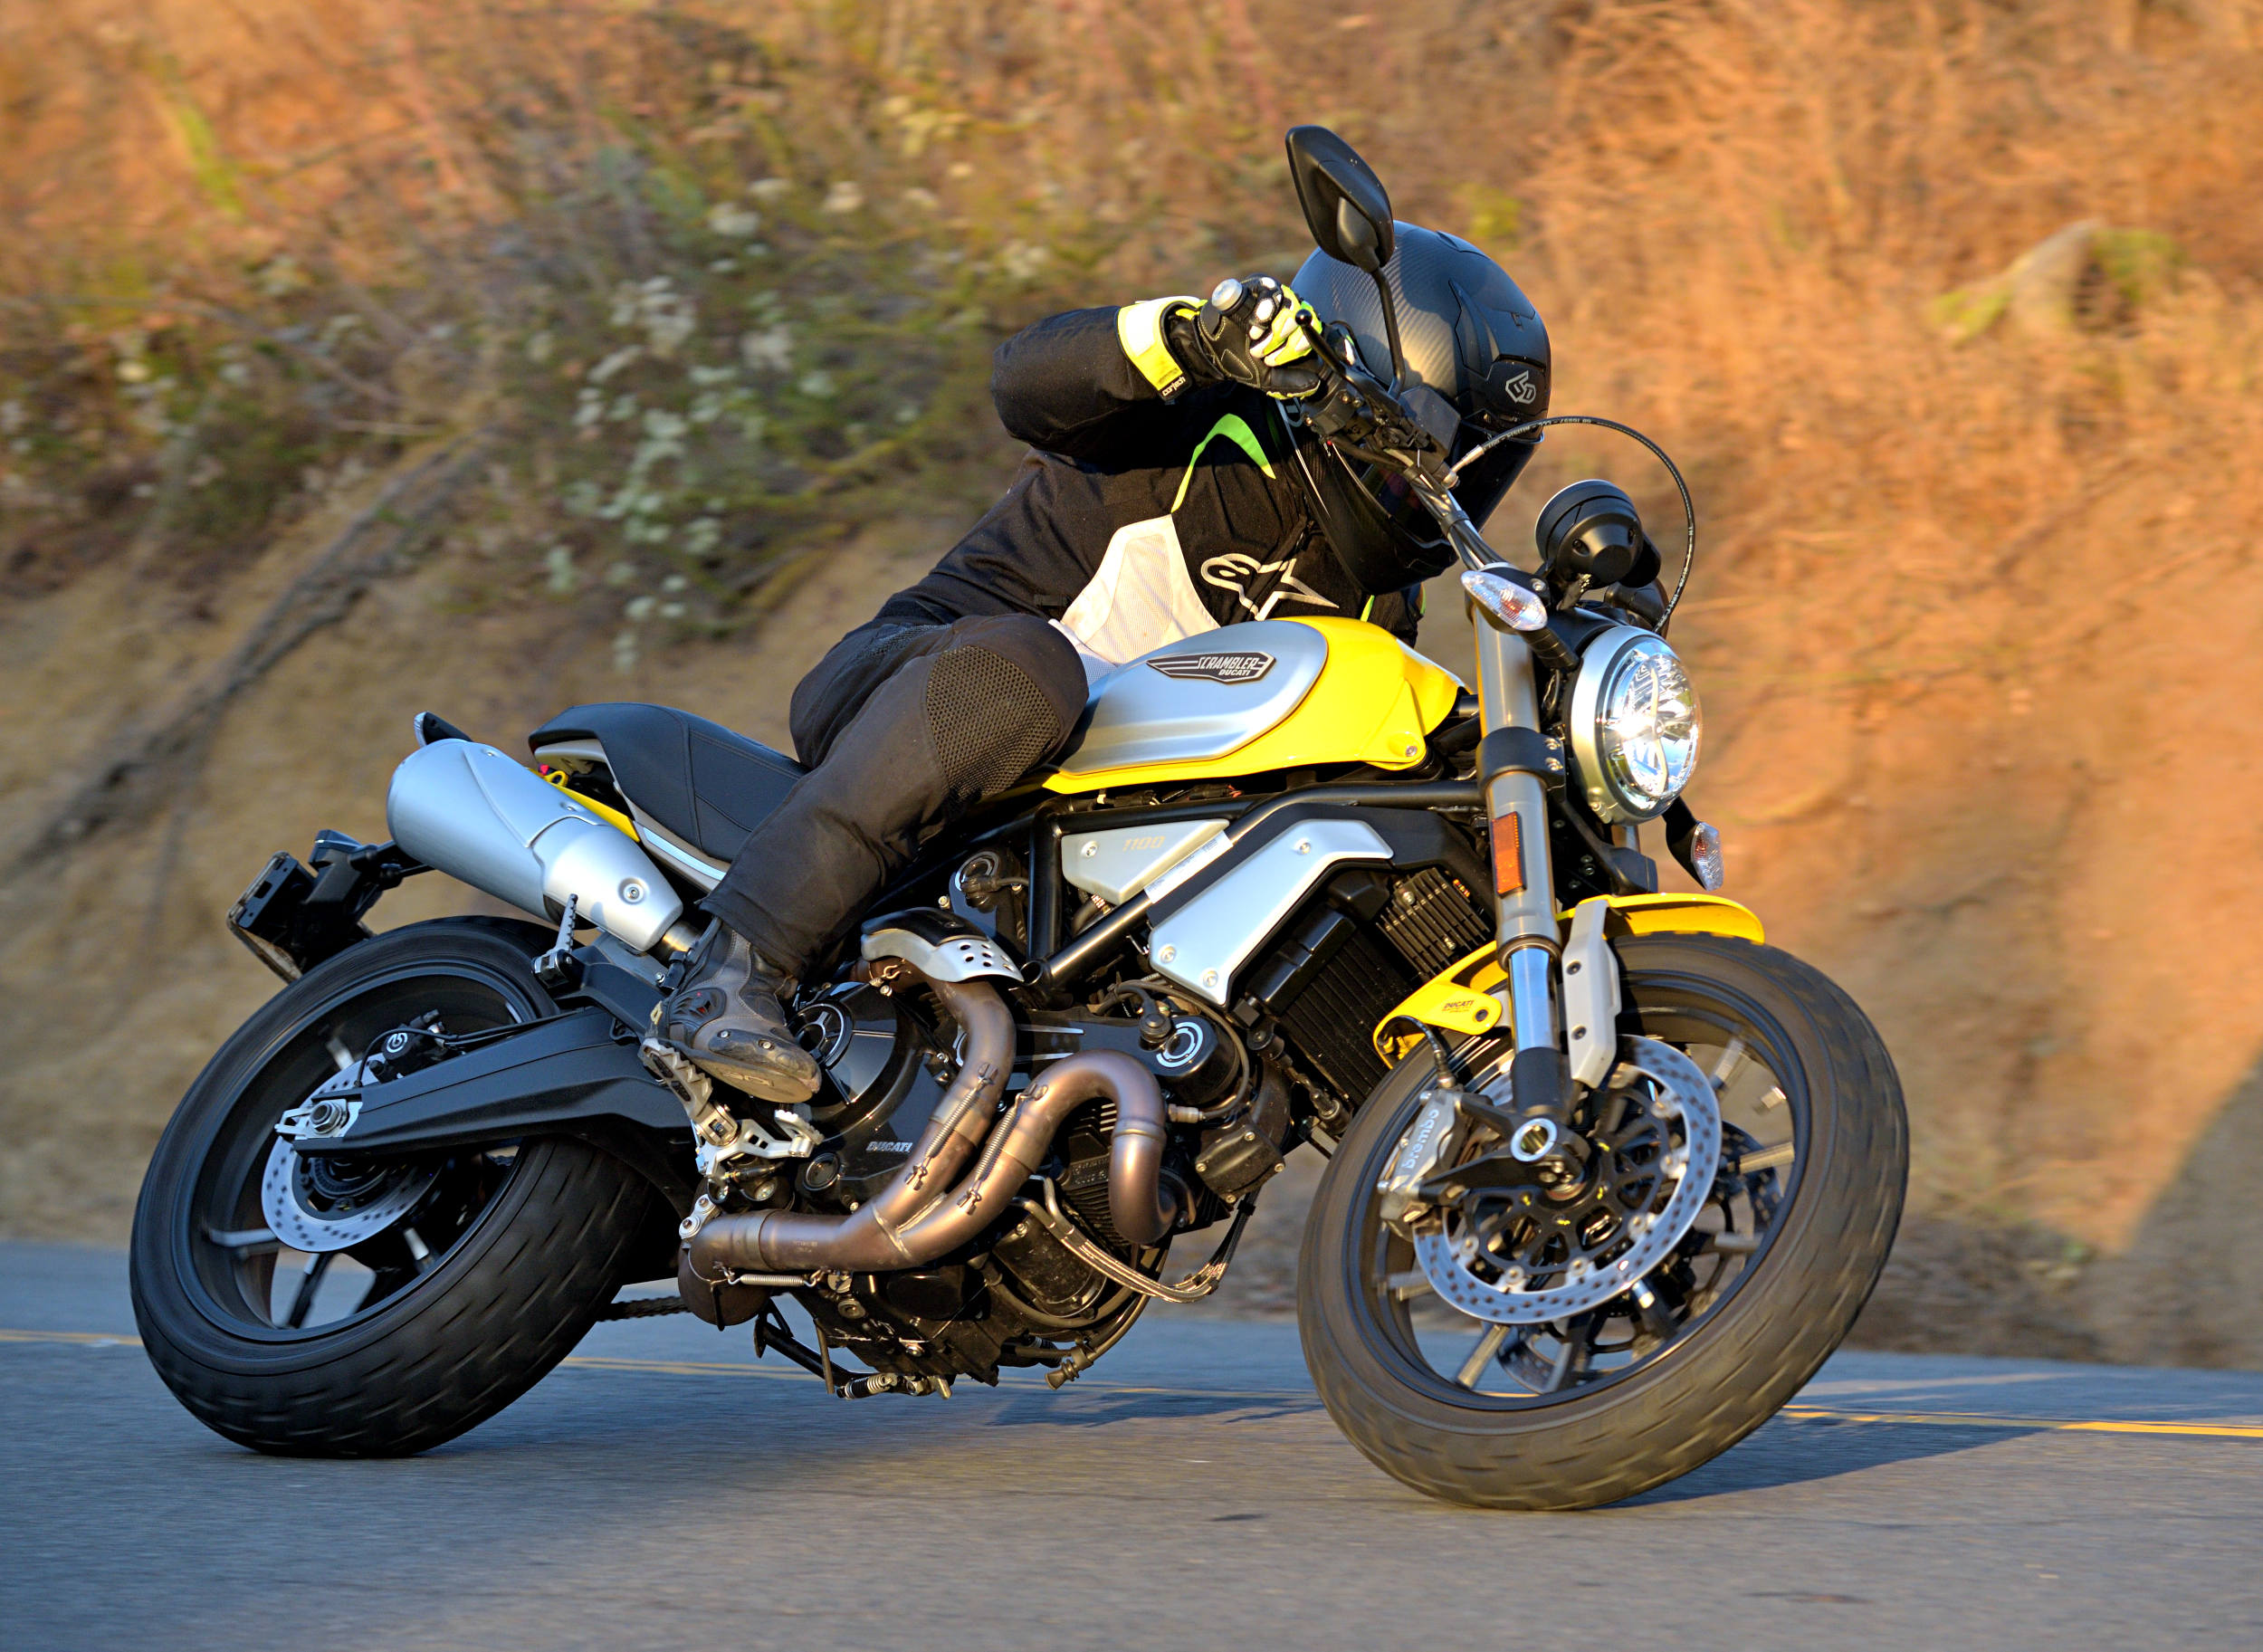 2018 Ducati Scrambler 1100 Md Ride Review Motorcycledailycom